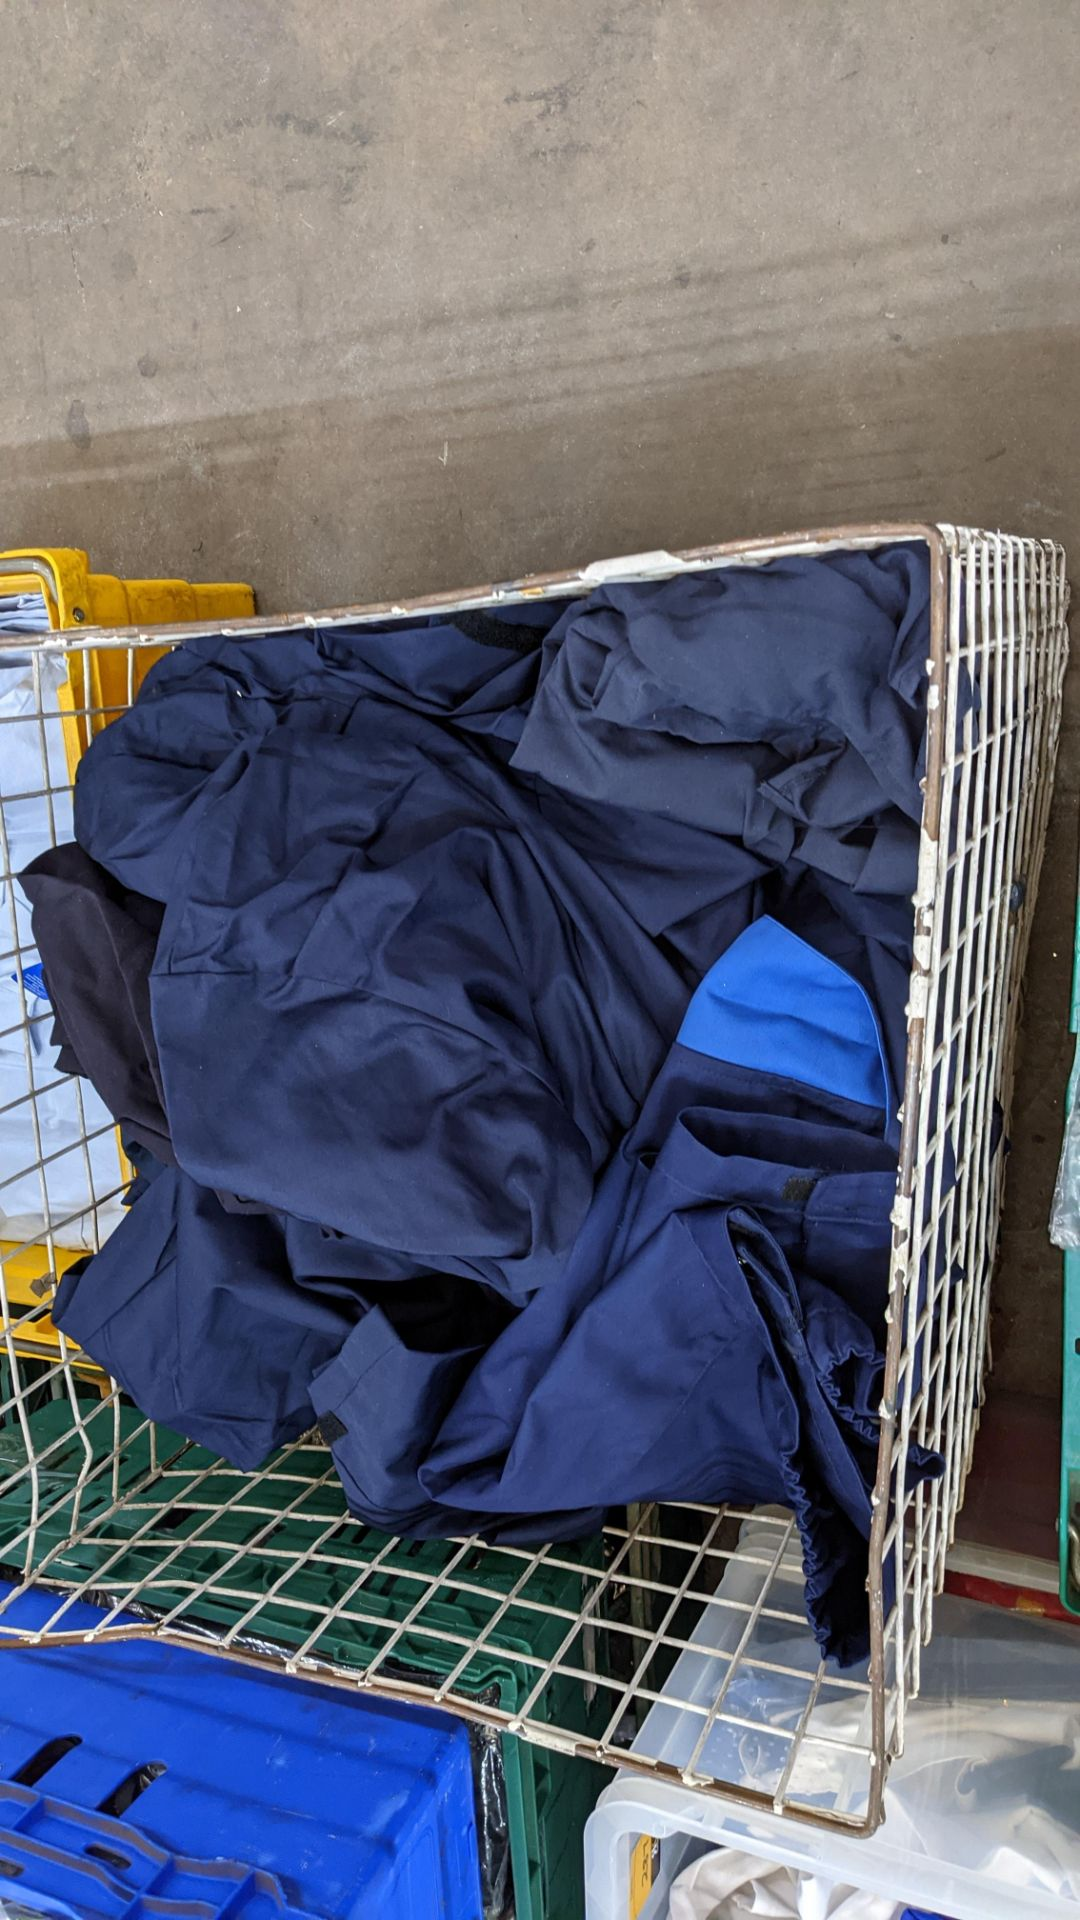 The contents of 1 crate & 1 large cage of assorted workwear jackets & similar. NB crate/cage exclu - Image 8 of 11